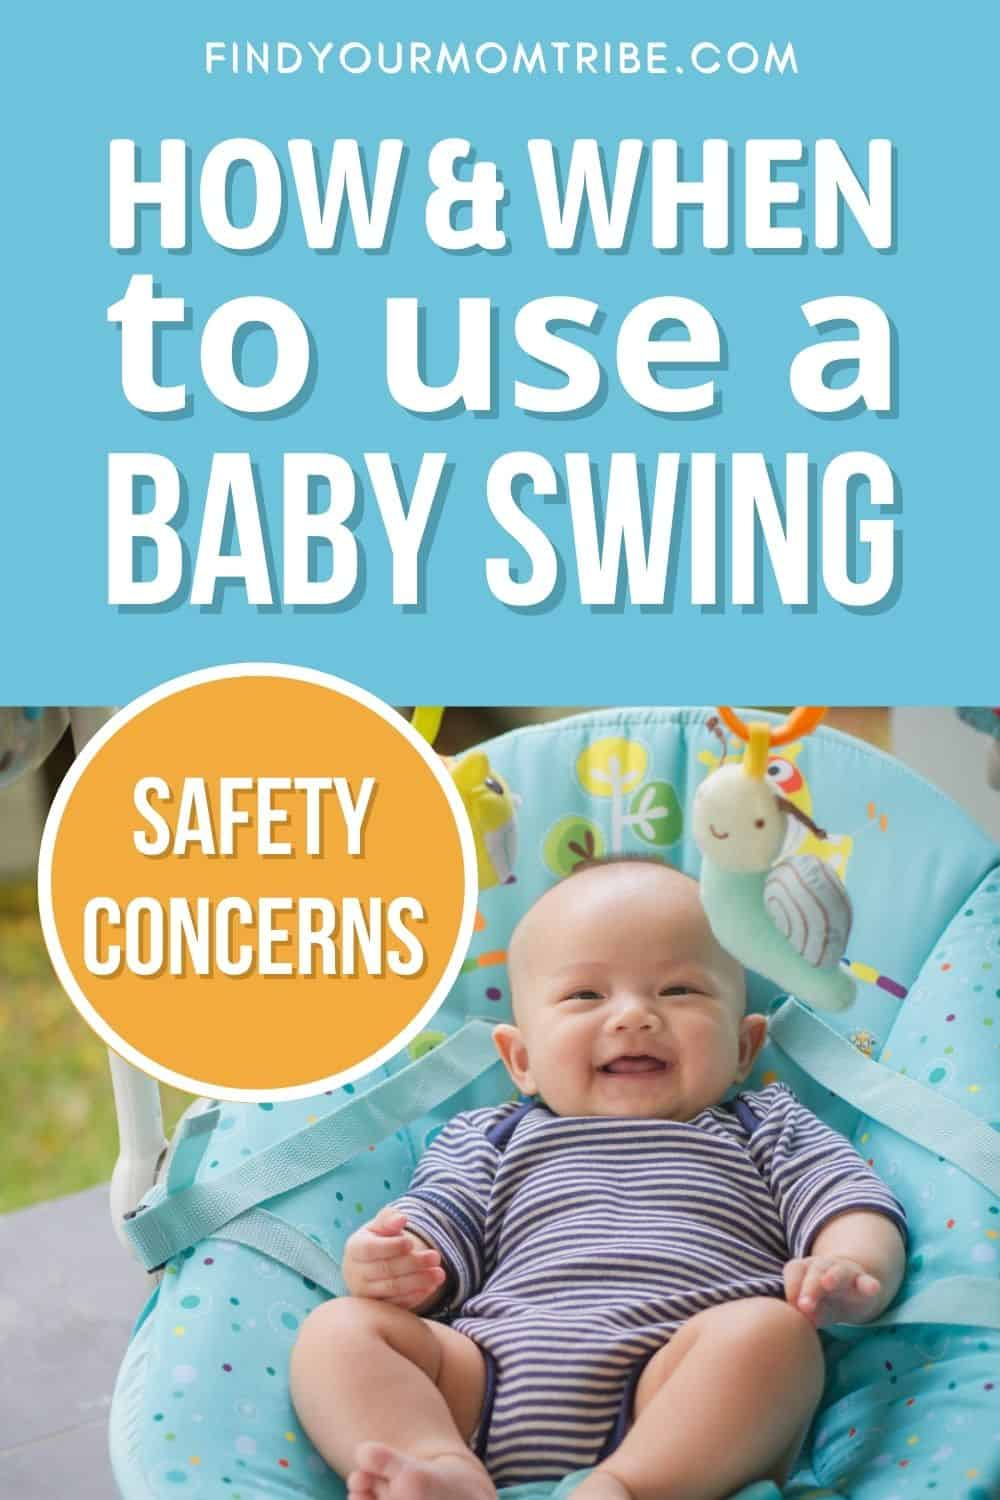 When And How To Use A Baby Swing Safety Concerns Pinterest